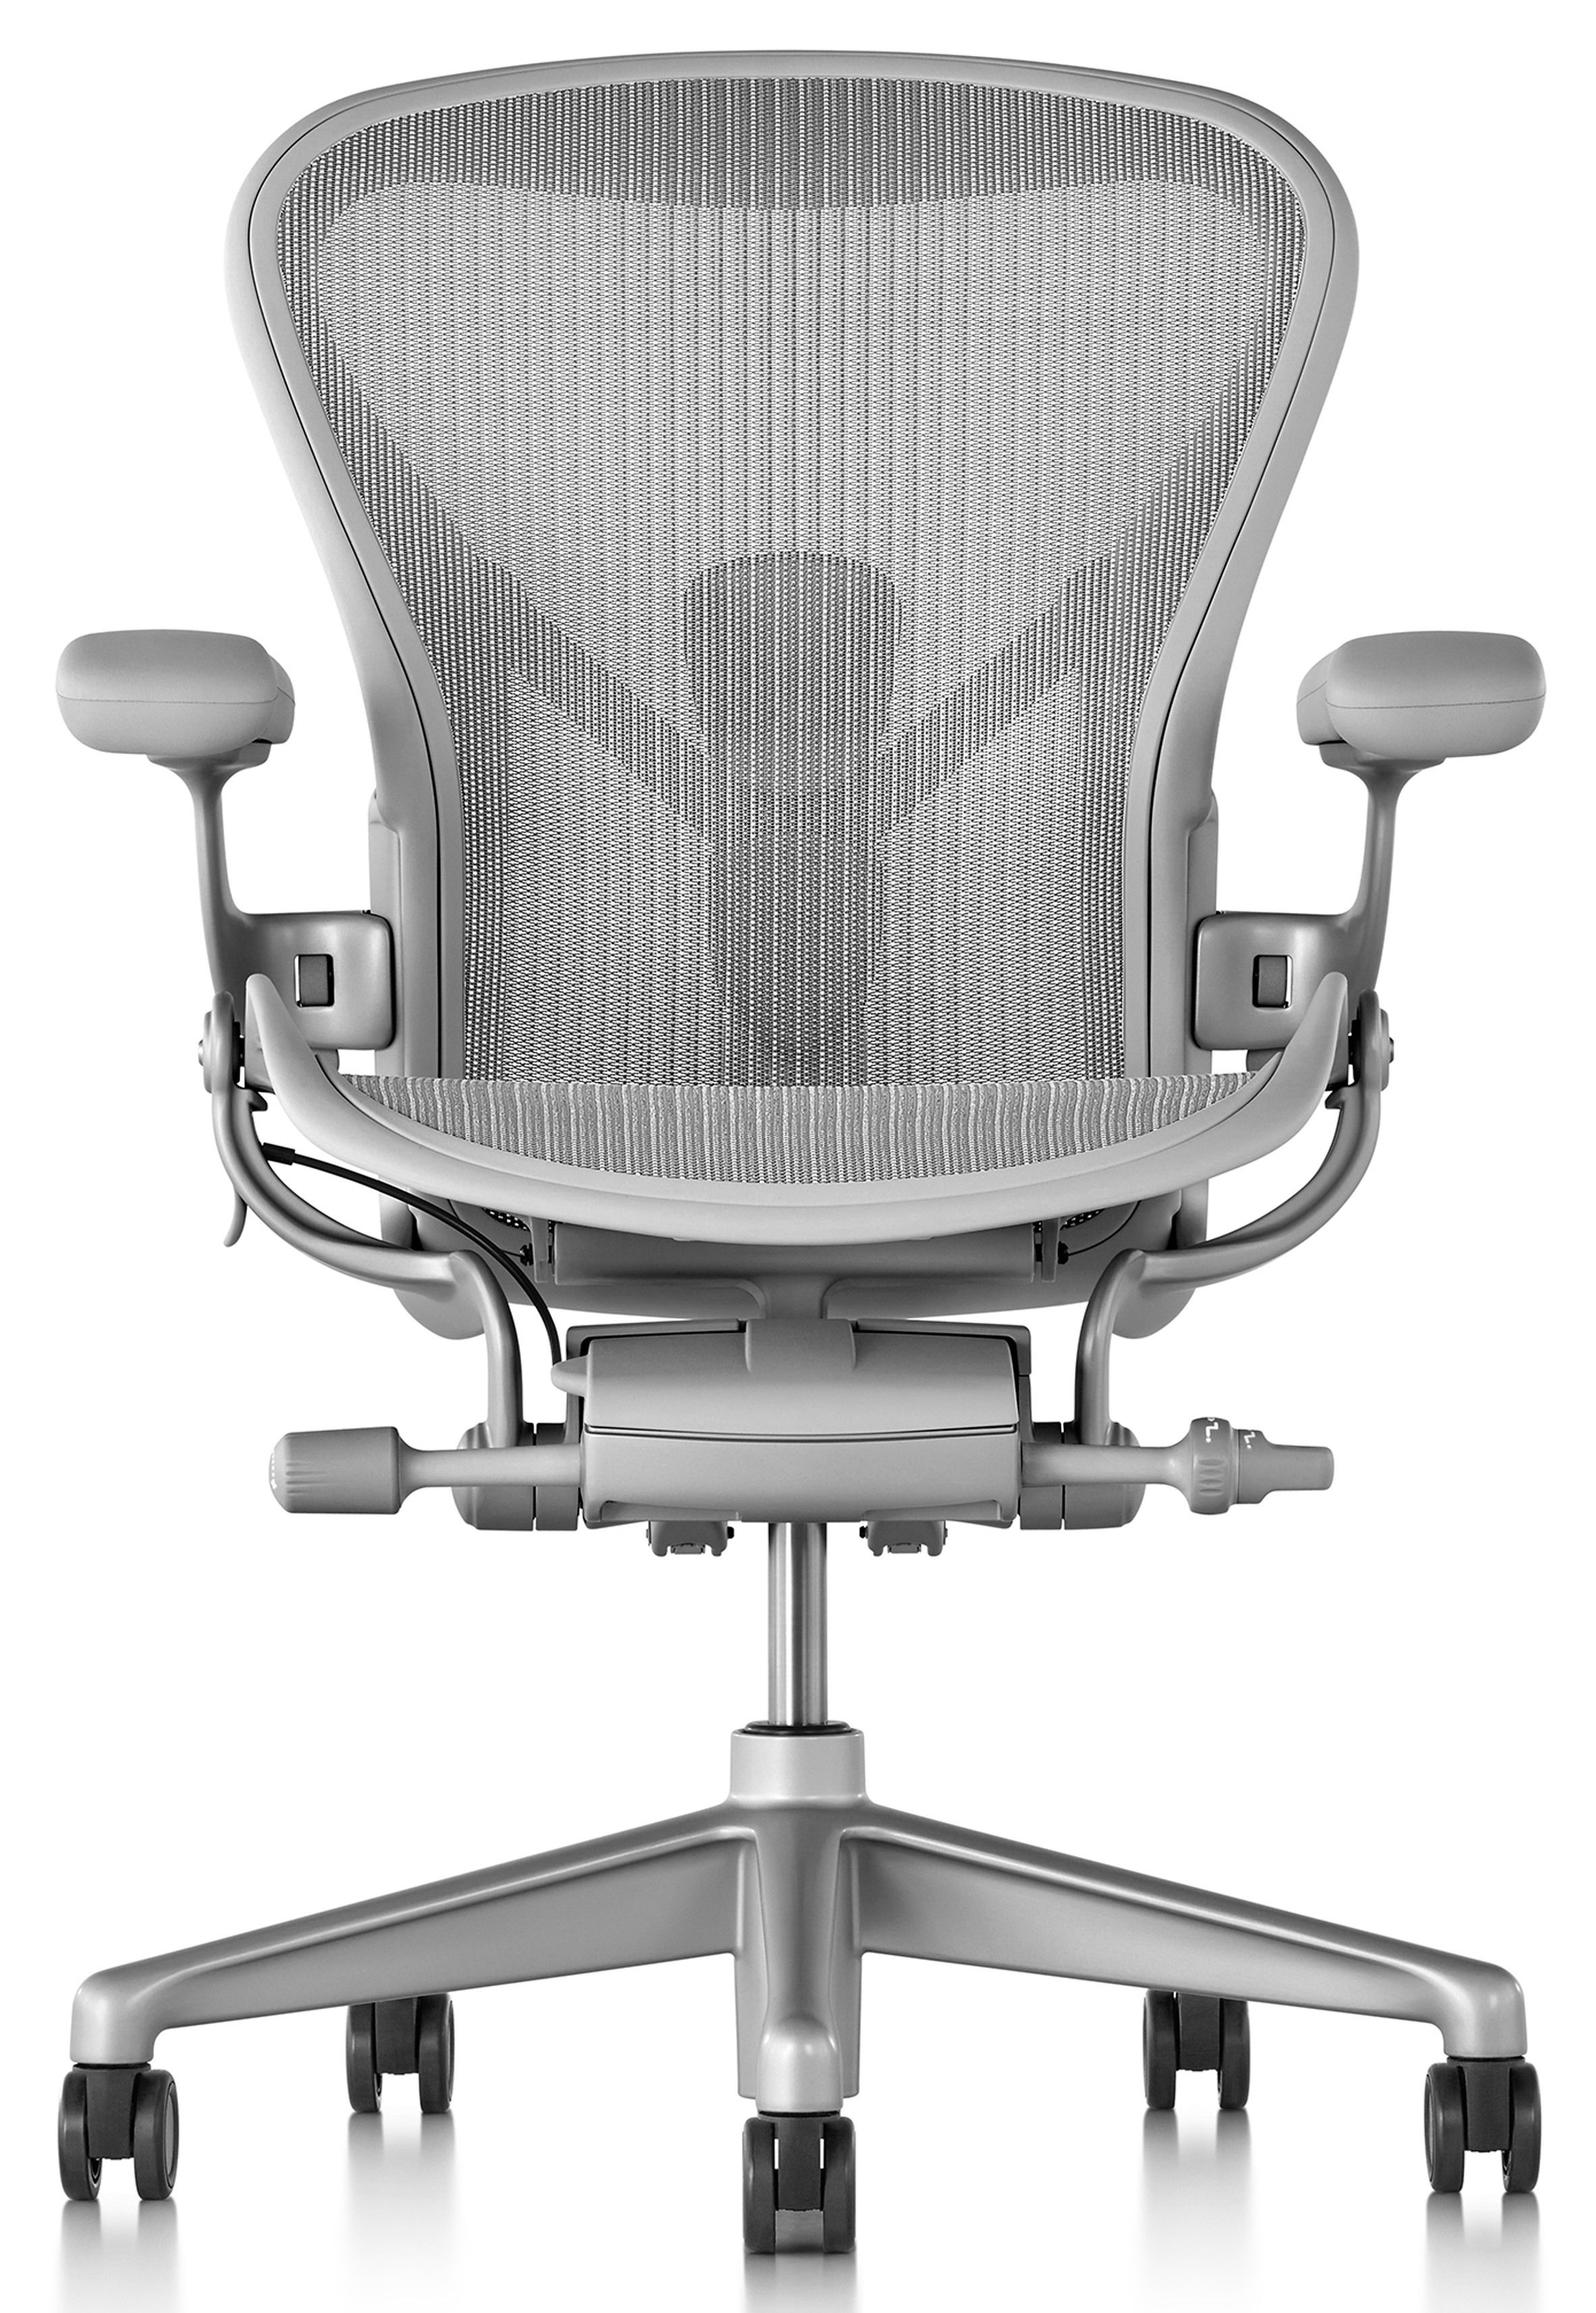 Herman Miller updates iconic Aeron office chair  sc 1 st  Pinterest & Herman Miller updates iconic Aeron office chair ...